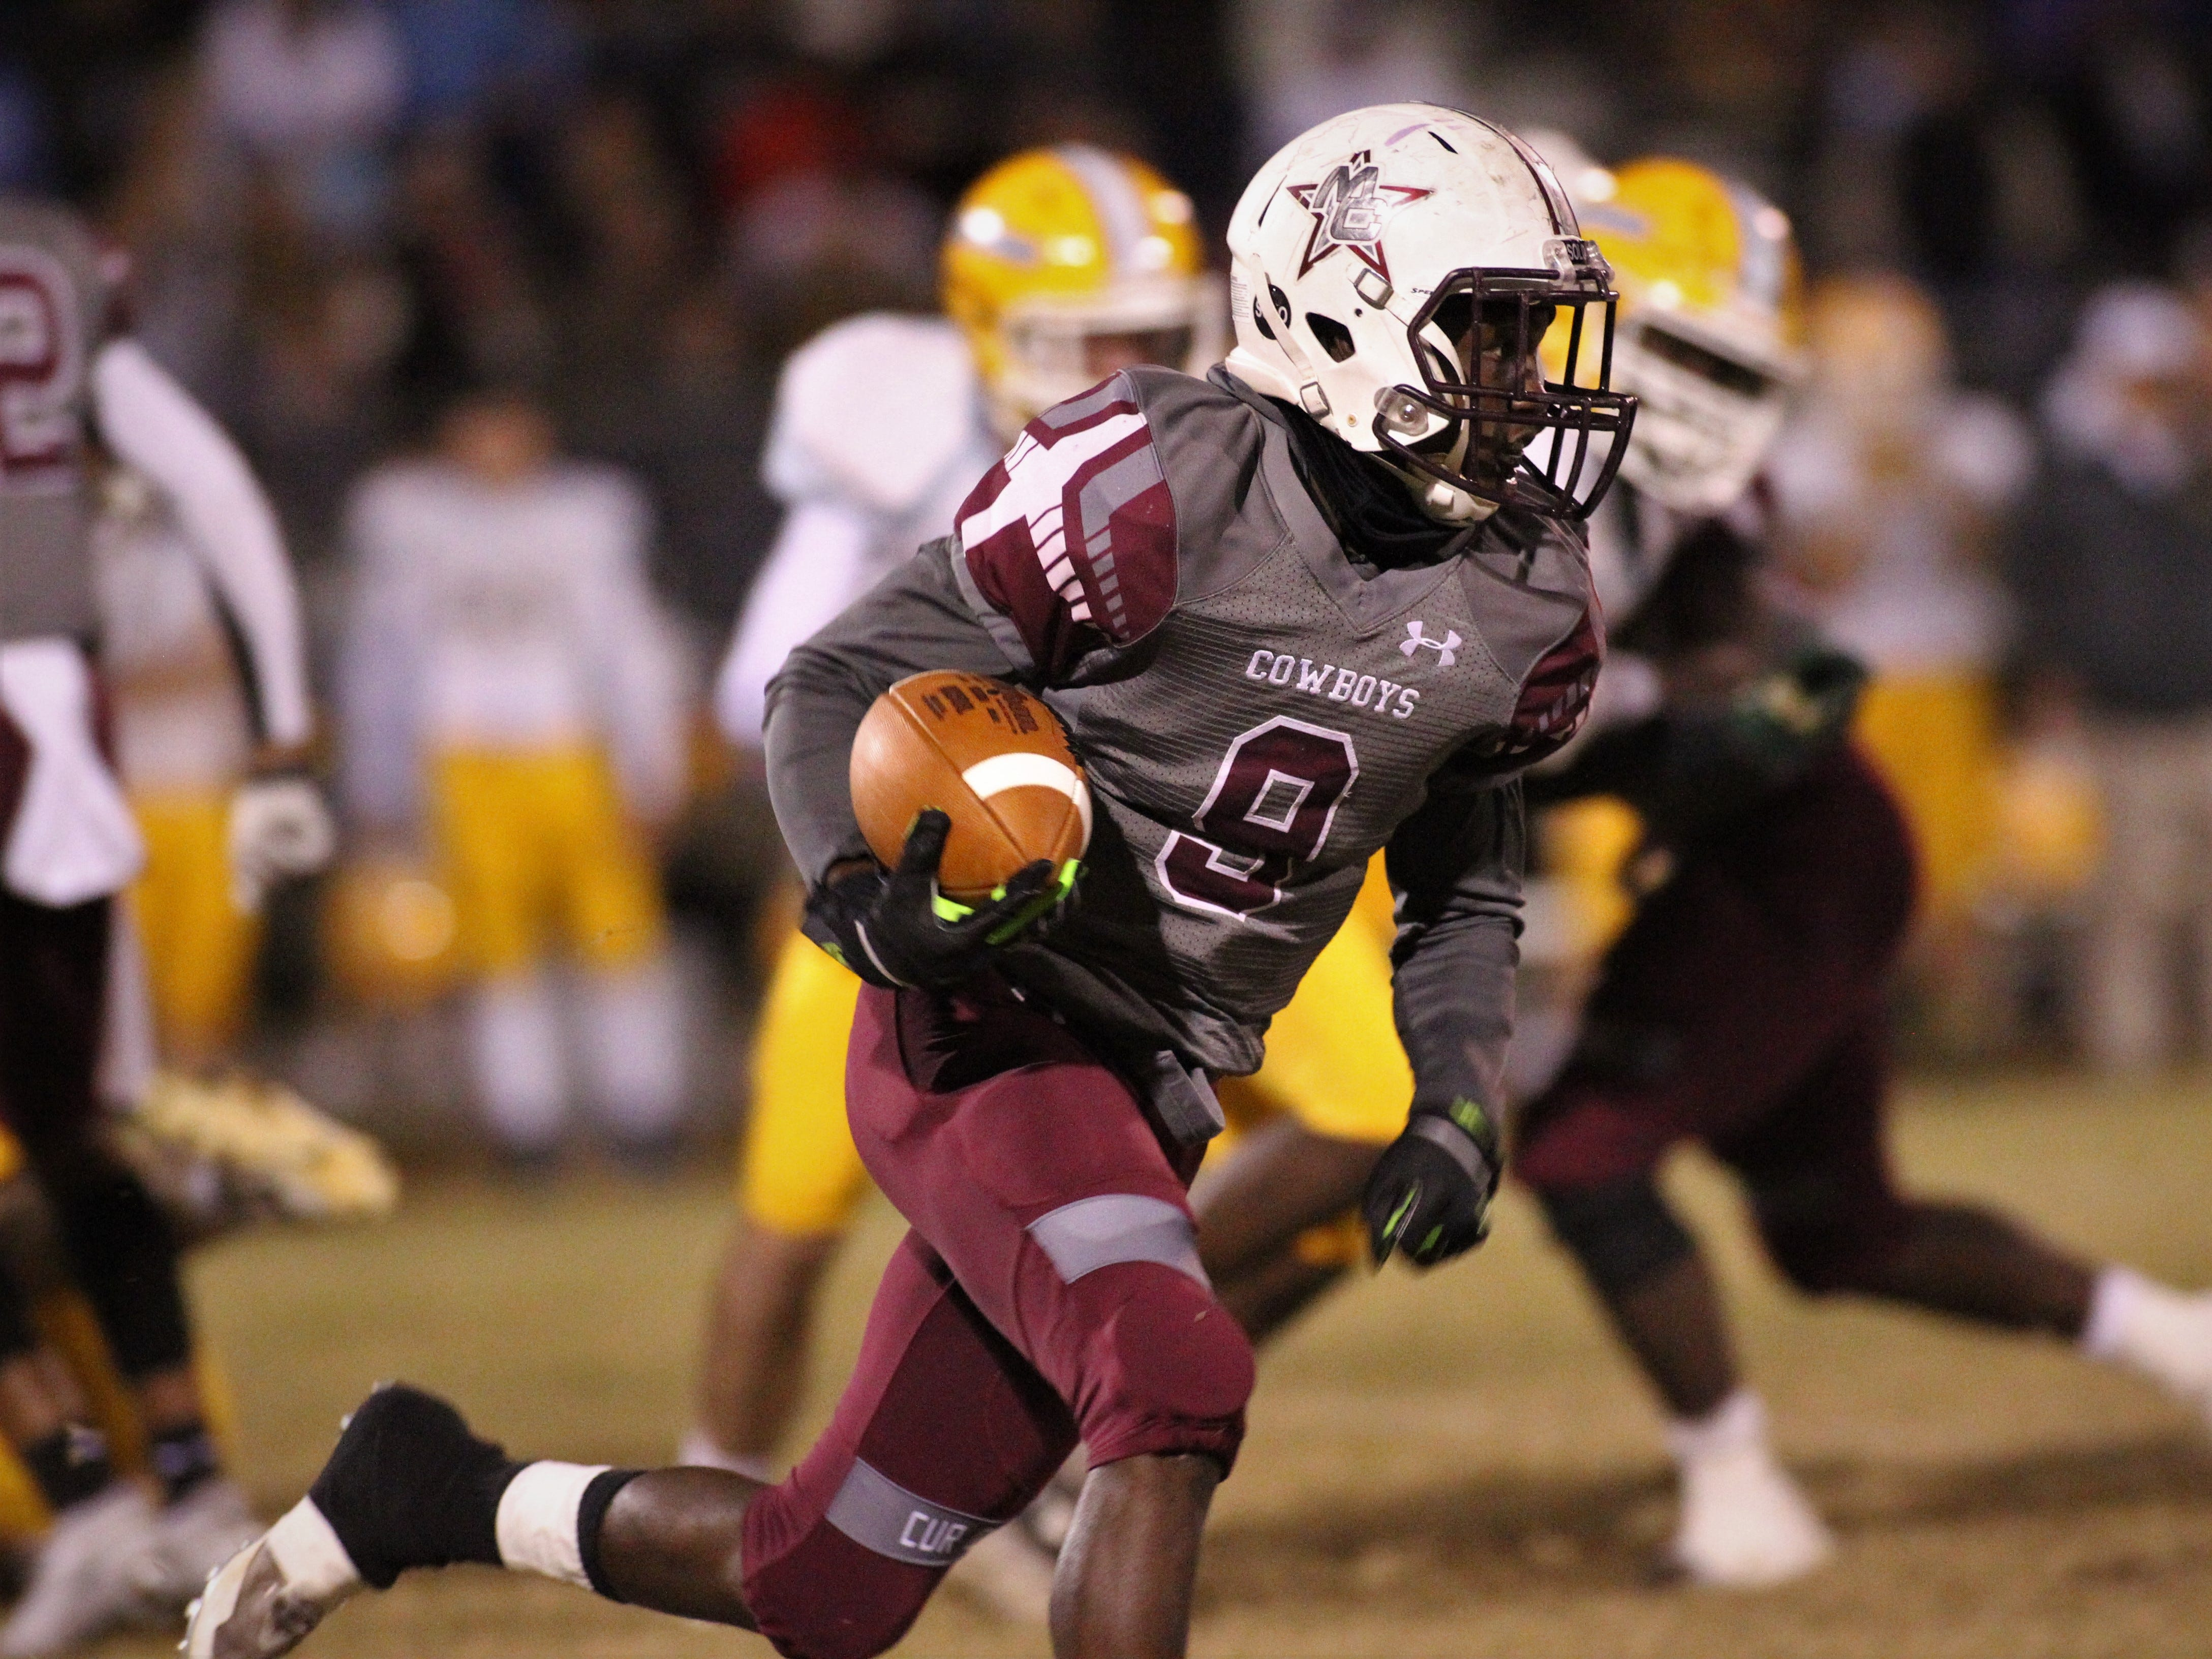 Derrion Staten returns a kickoff 50 yards as Madison County beat Chiefland 49-14 in a Region 3-1A final at Boot Hill Stadium on Friday, Nov. 23, 2018.